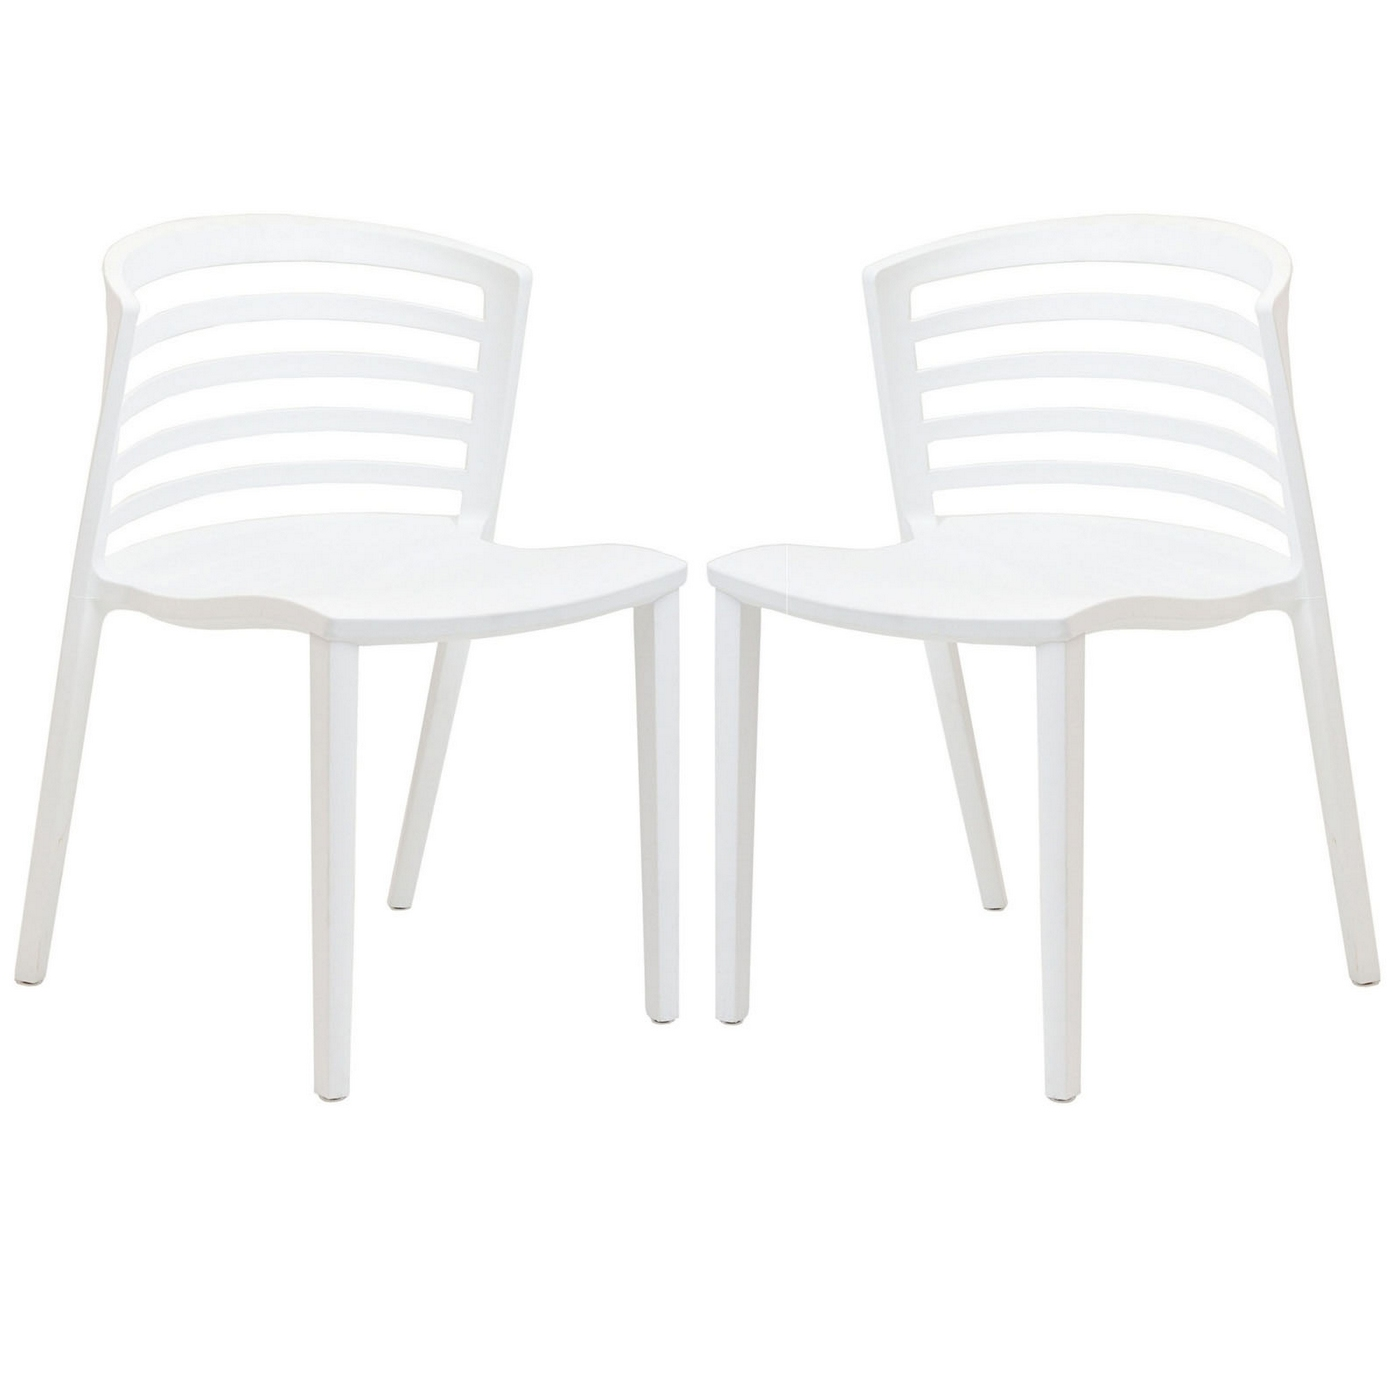 white stacking chairs plastic chair covers and linens set of 2 curvy contemporary stackable molded